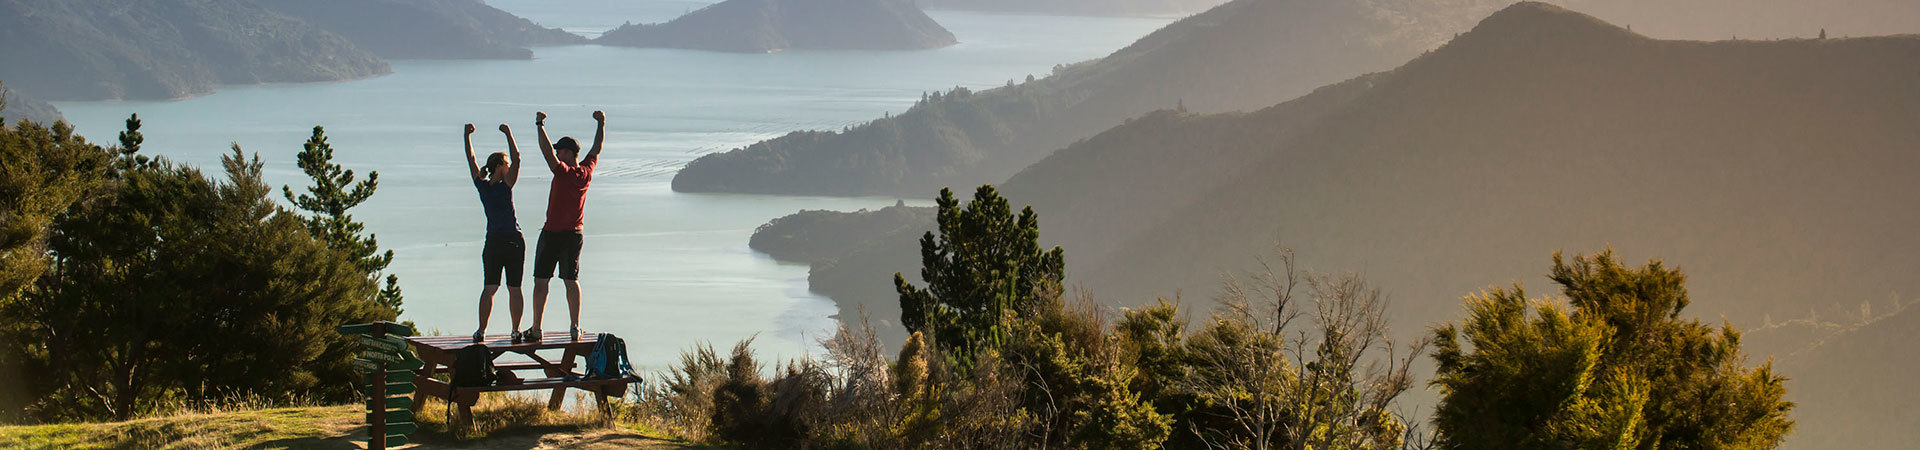 Couple overlooking Marlborough Sounds, New Zealand